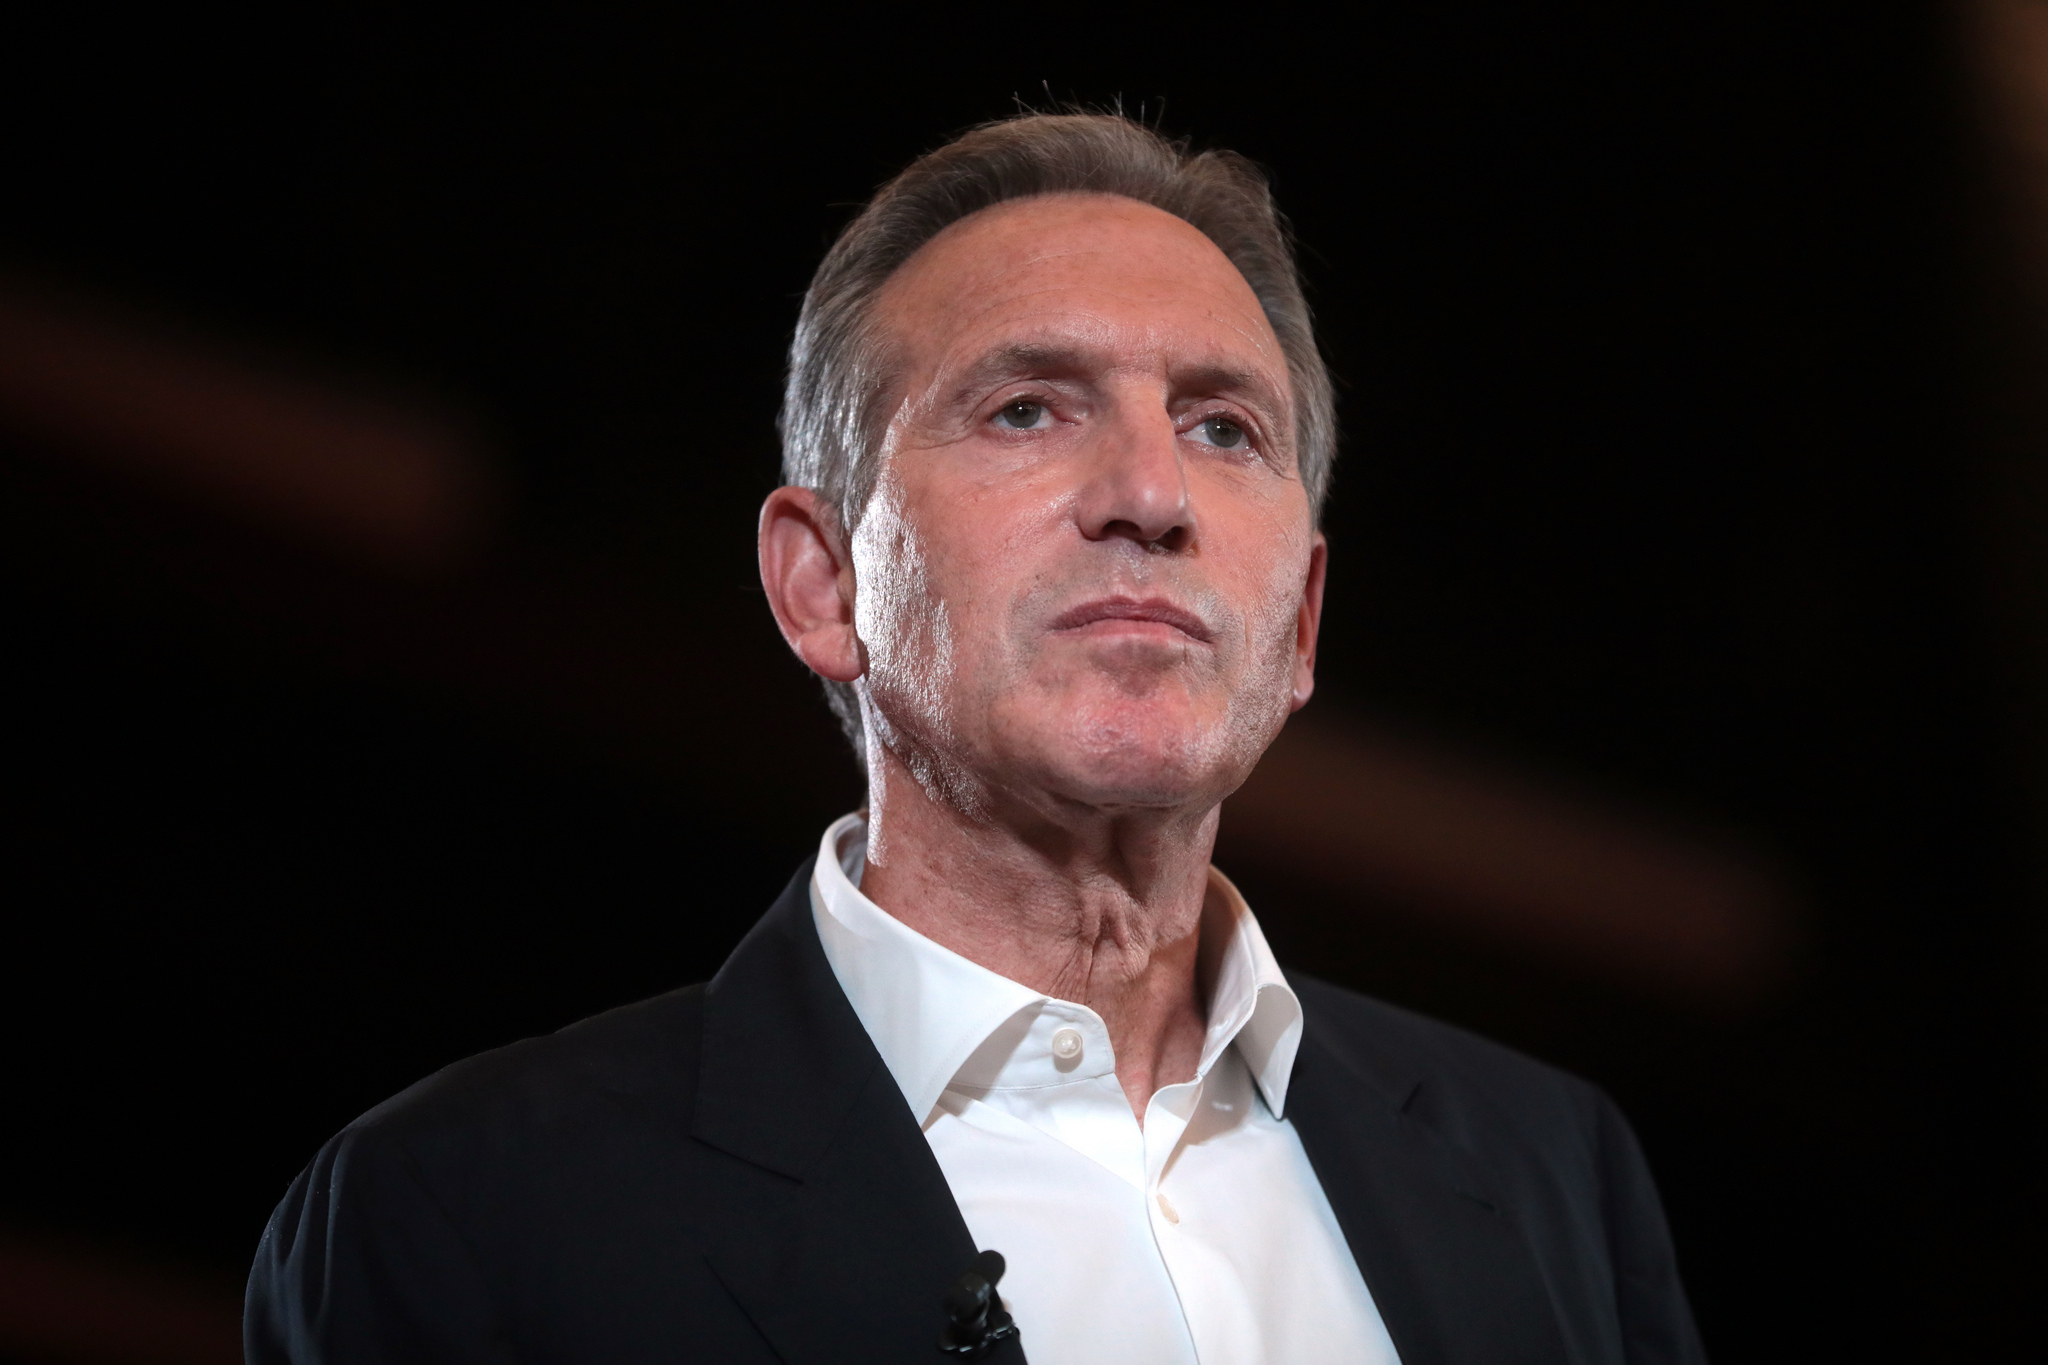 Howard Schultz Doesn't Seem To Have Much Of A Constituency